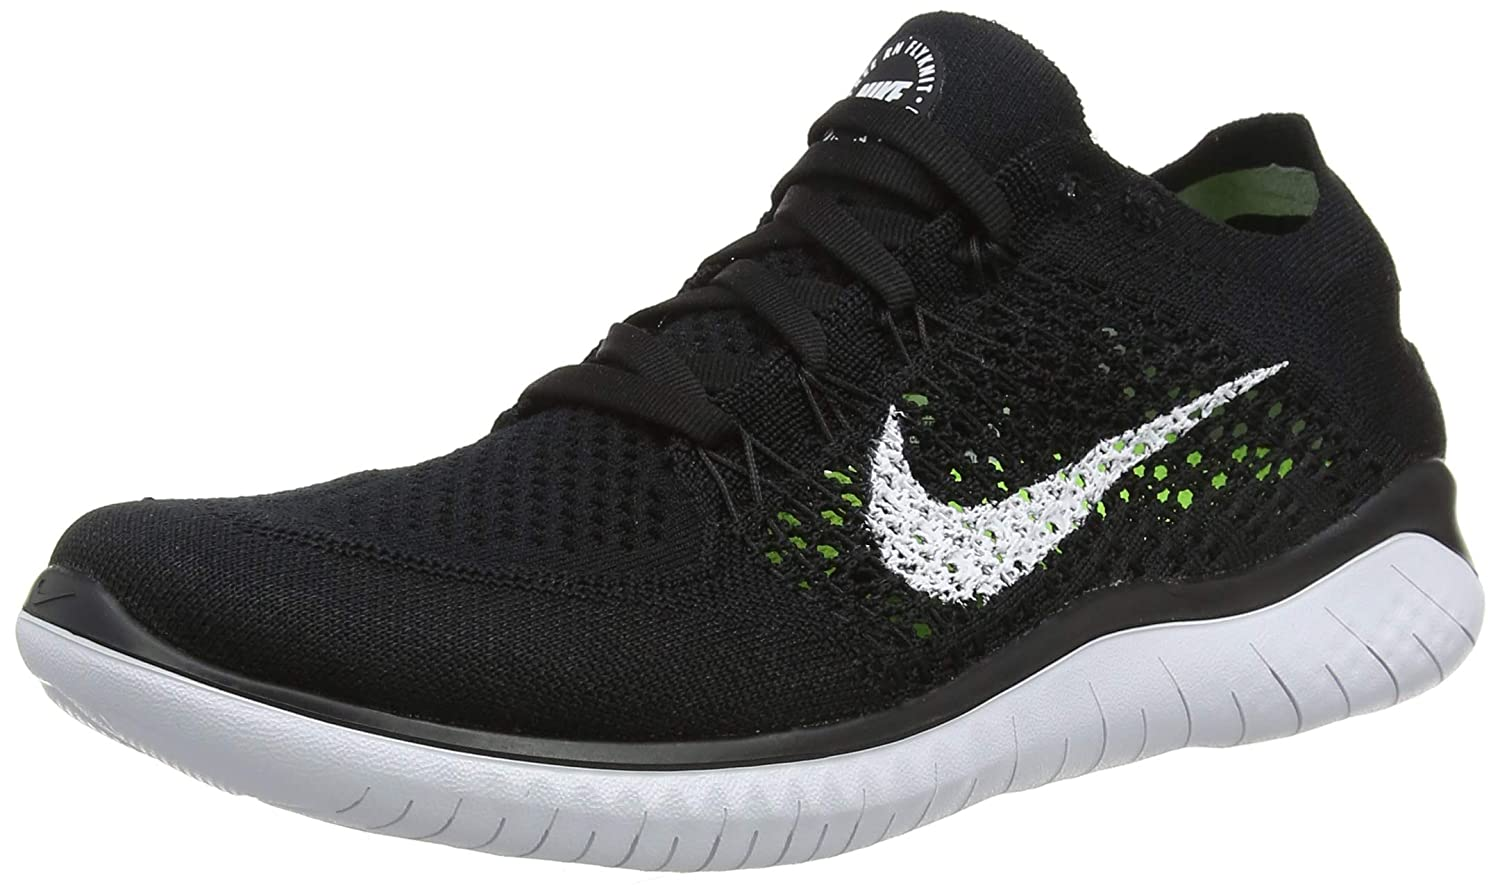 Nike Free RN Flyknit 2018 women s running shoes 942839-001 Multiple sizes US 10,Medium B, M